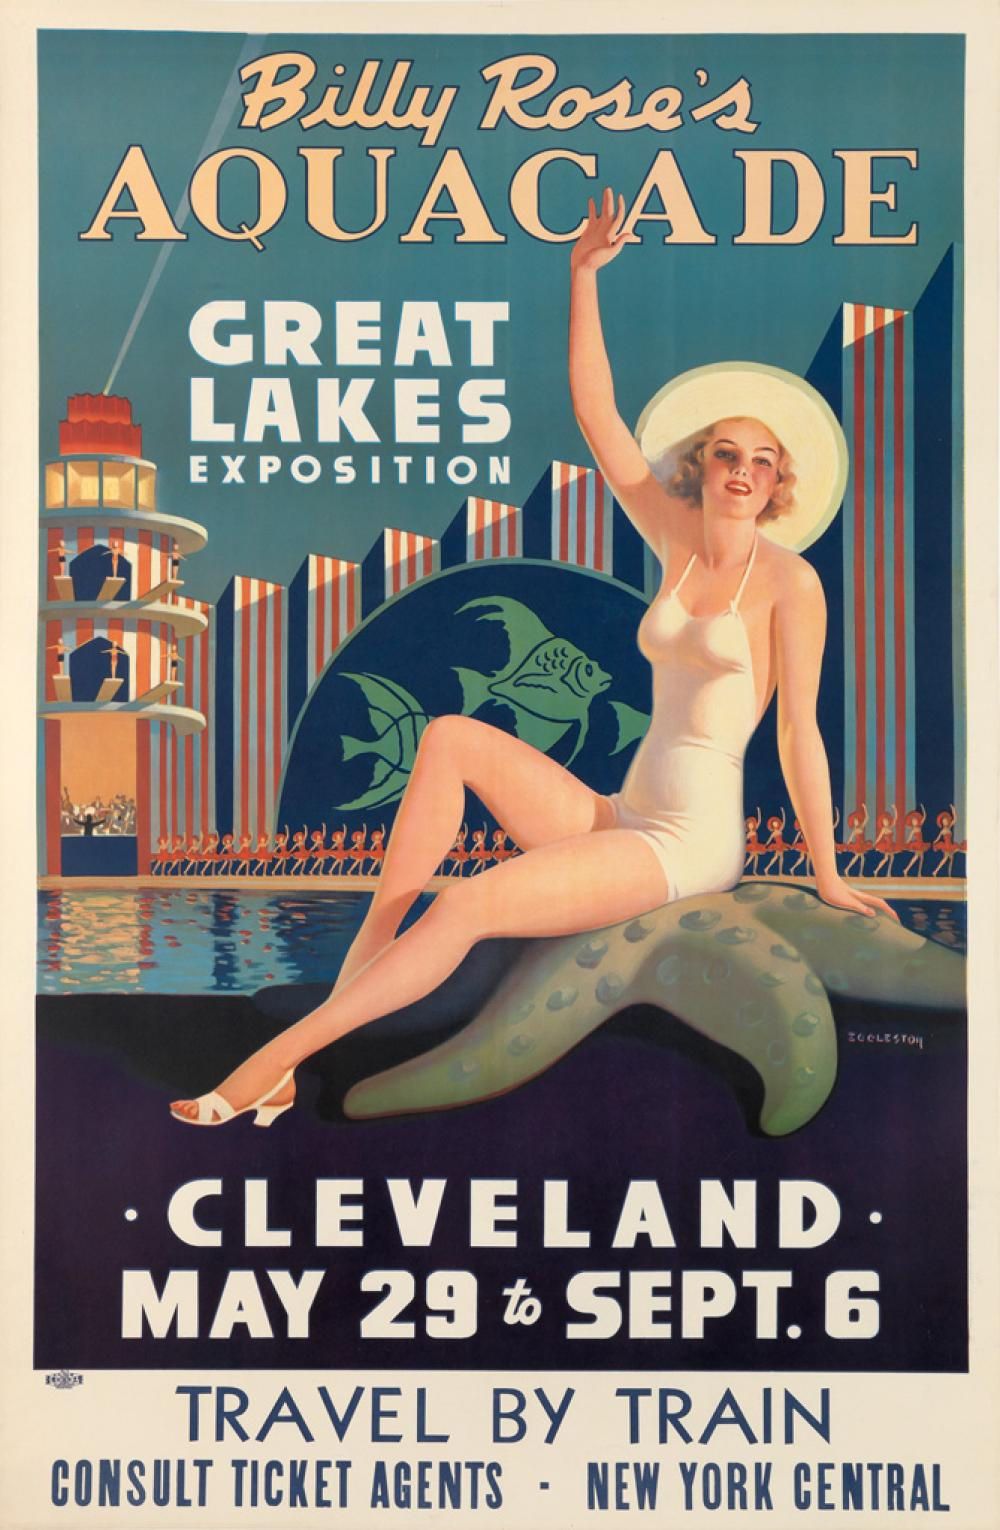 EDWARD M. EGGLESTON (1883-1941). BILLY ROSE'S AQUACADE / GREAT LAKES EXPOSITION. 1936. 43x28 inches, 111x72 cm. L.I.P. & B.A., Clevela